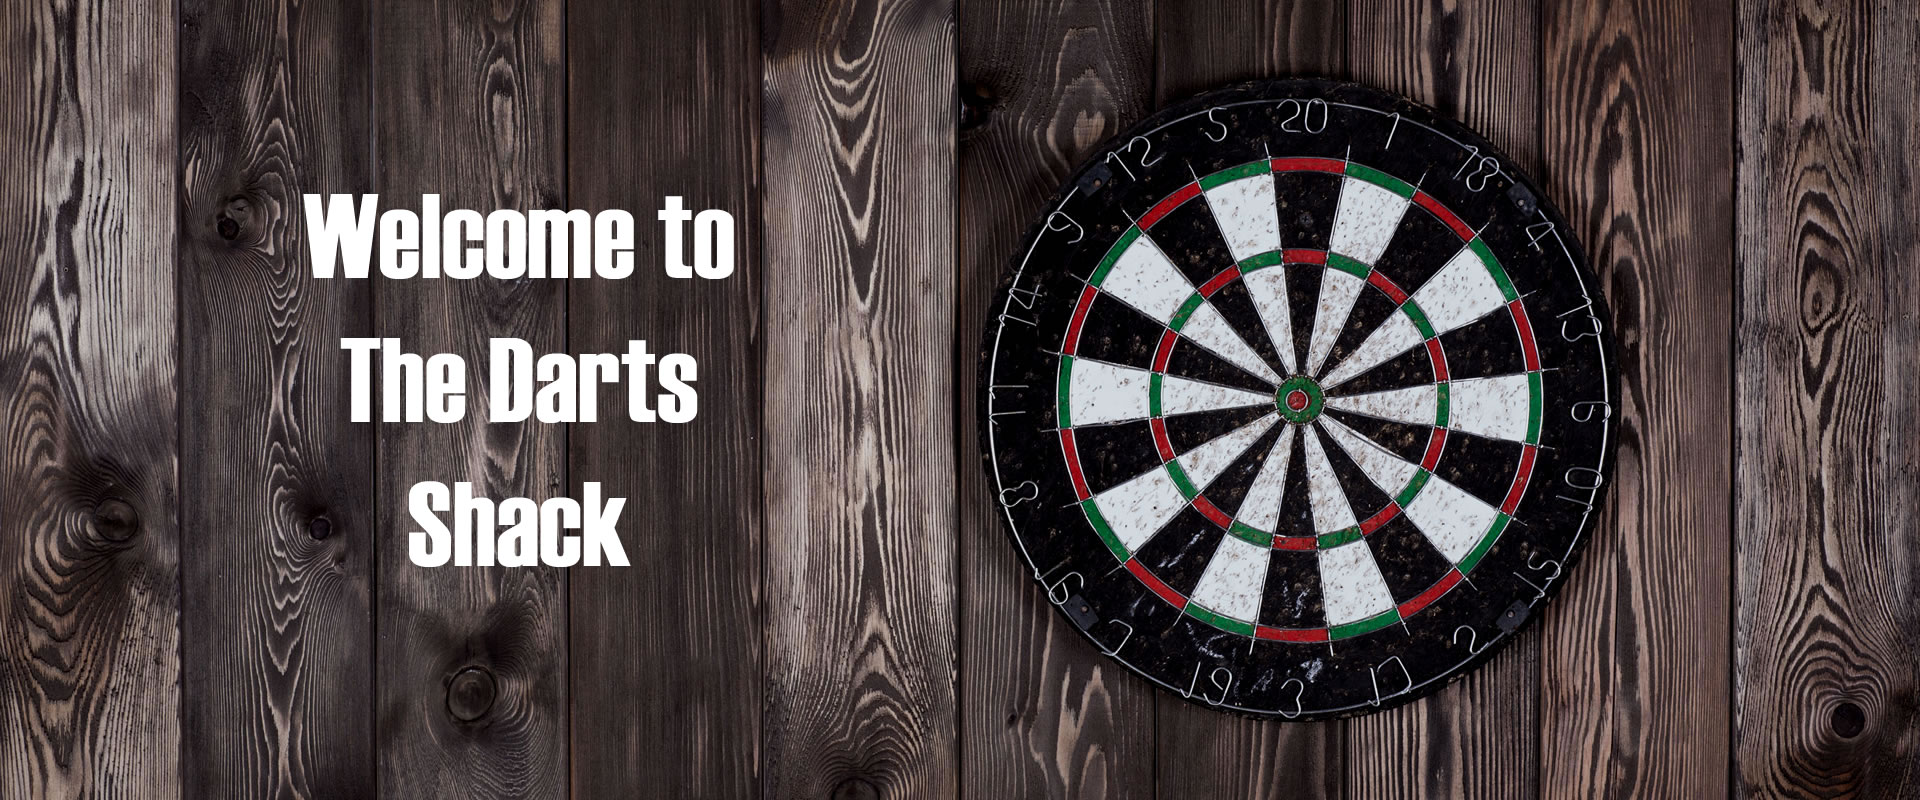 The Darts Shack - Leicestershire darts shop